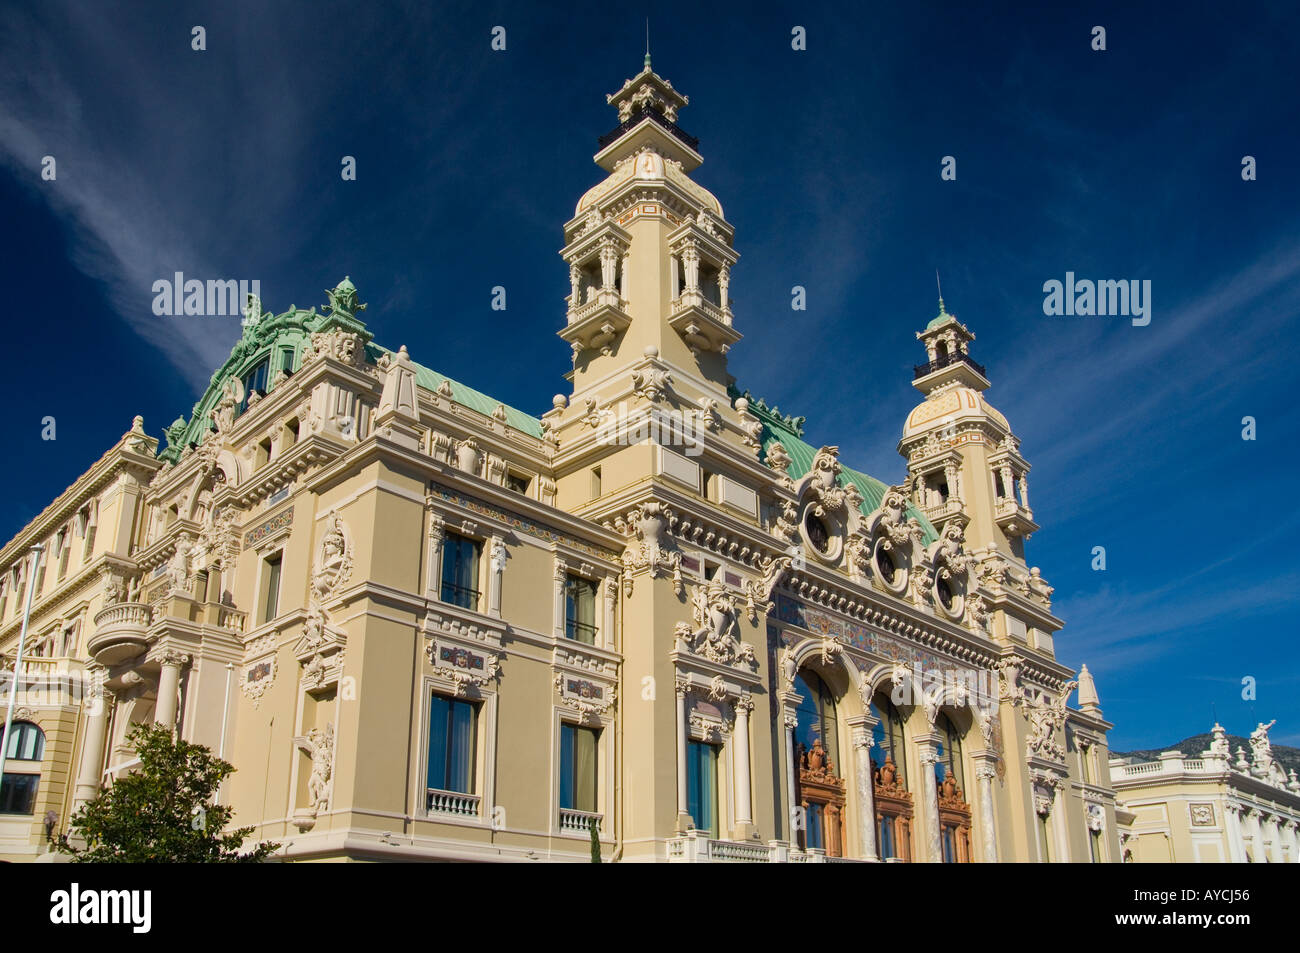 The rear of the Casino de Monte Carlo in the Principality of Monaco which looks out to sea - Stock Image